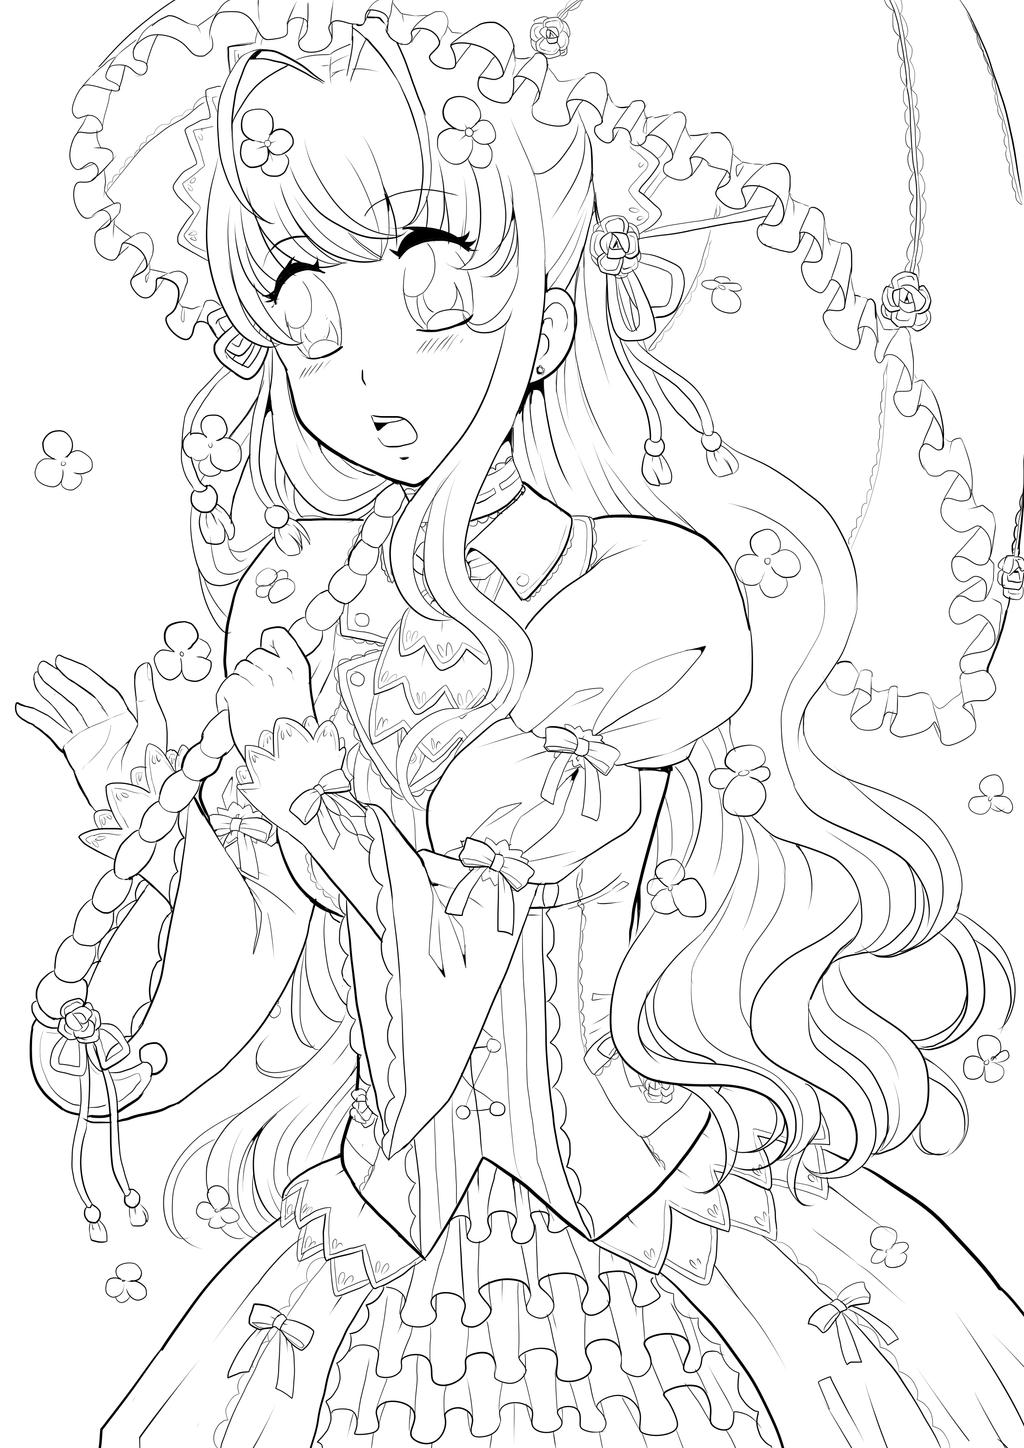 Manga studio ex 5 coloring pages ~ Flower Umbrella Girl Lineart by Twinkiesama on DeviantArt